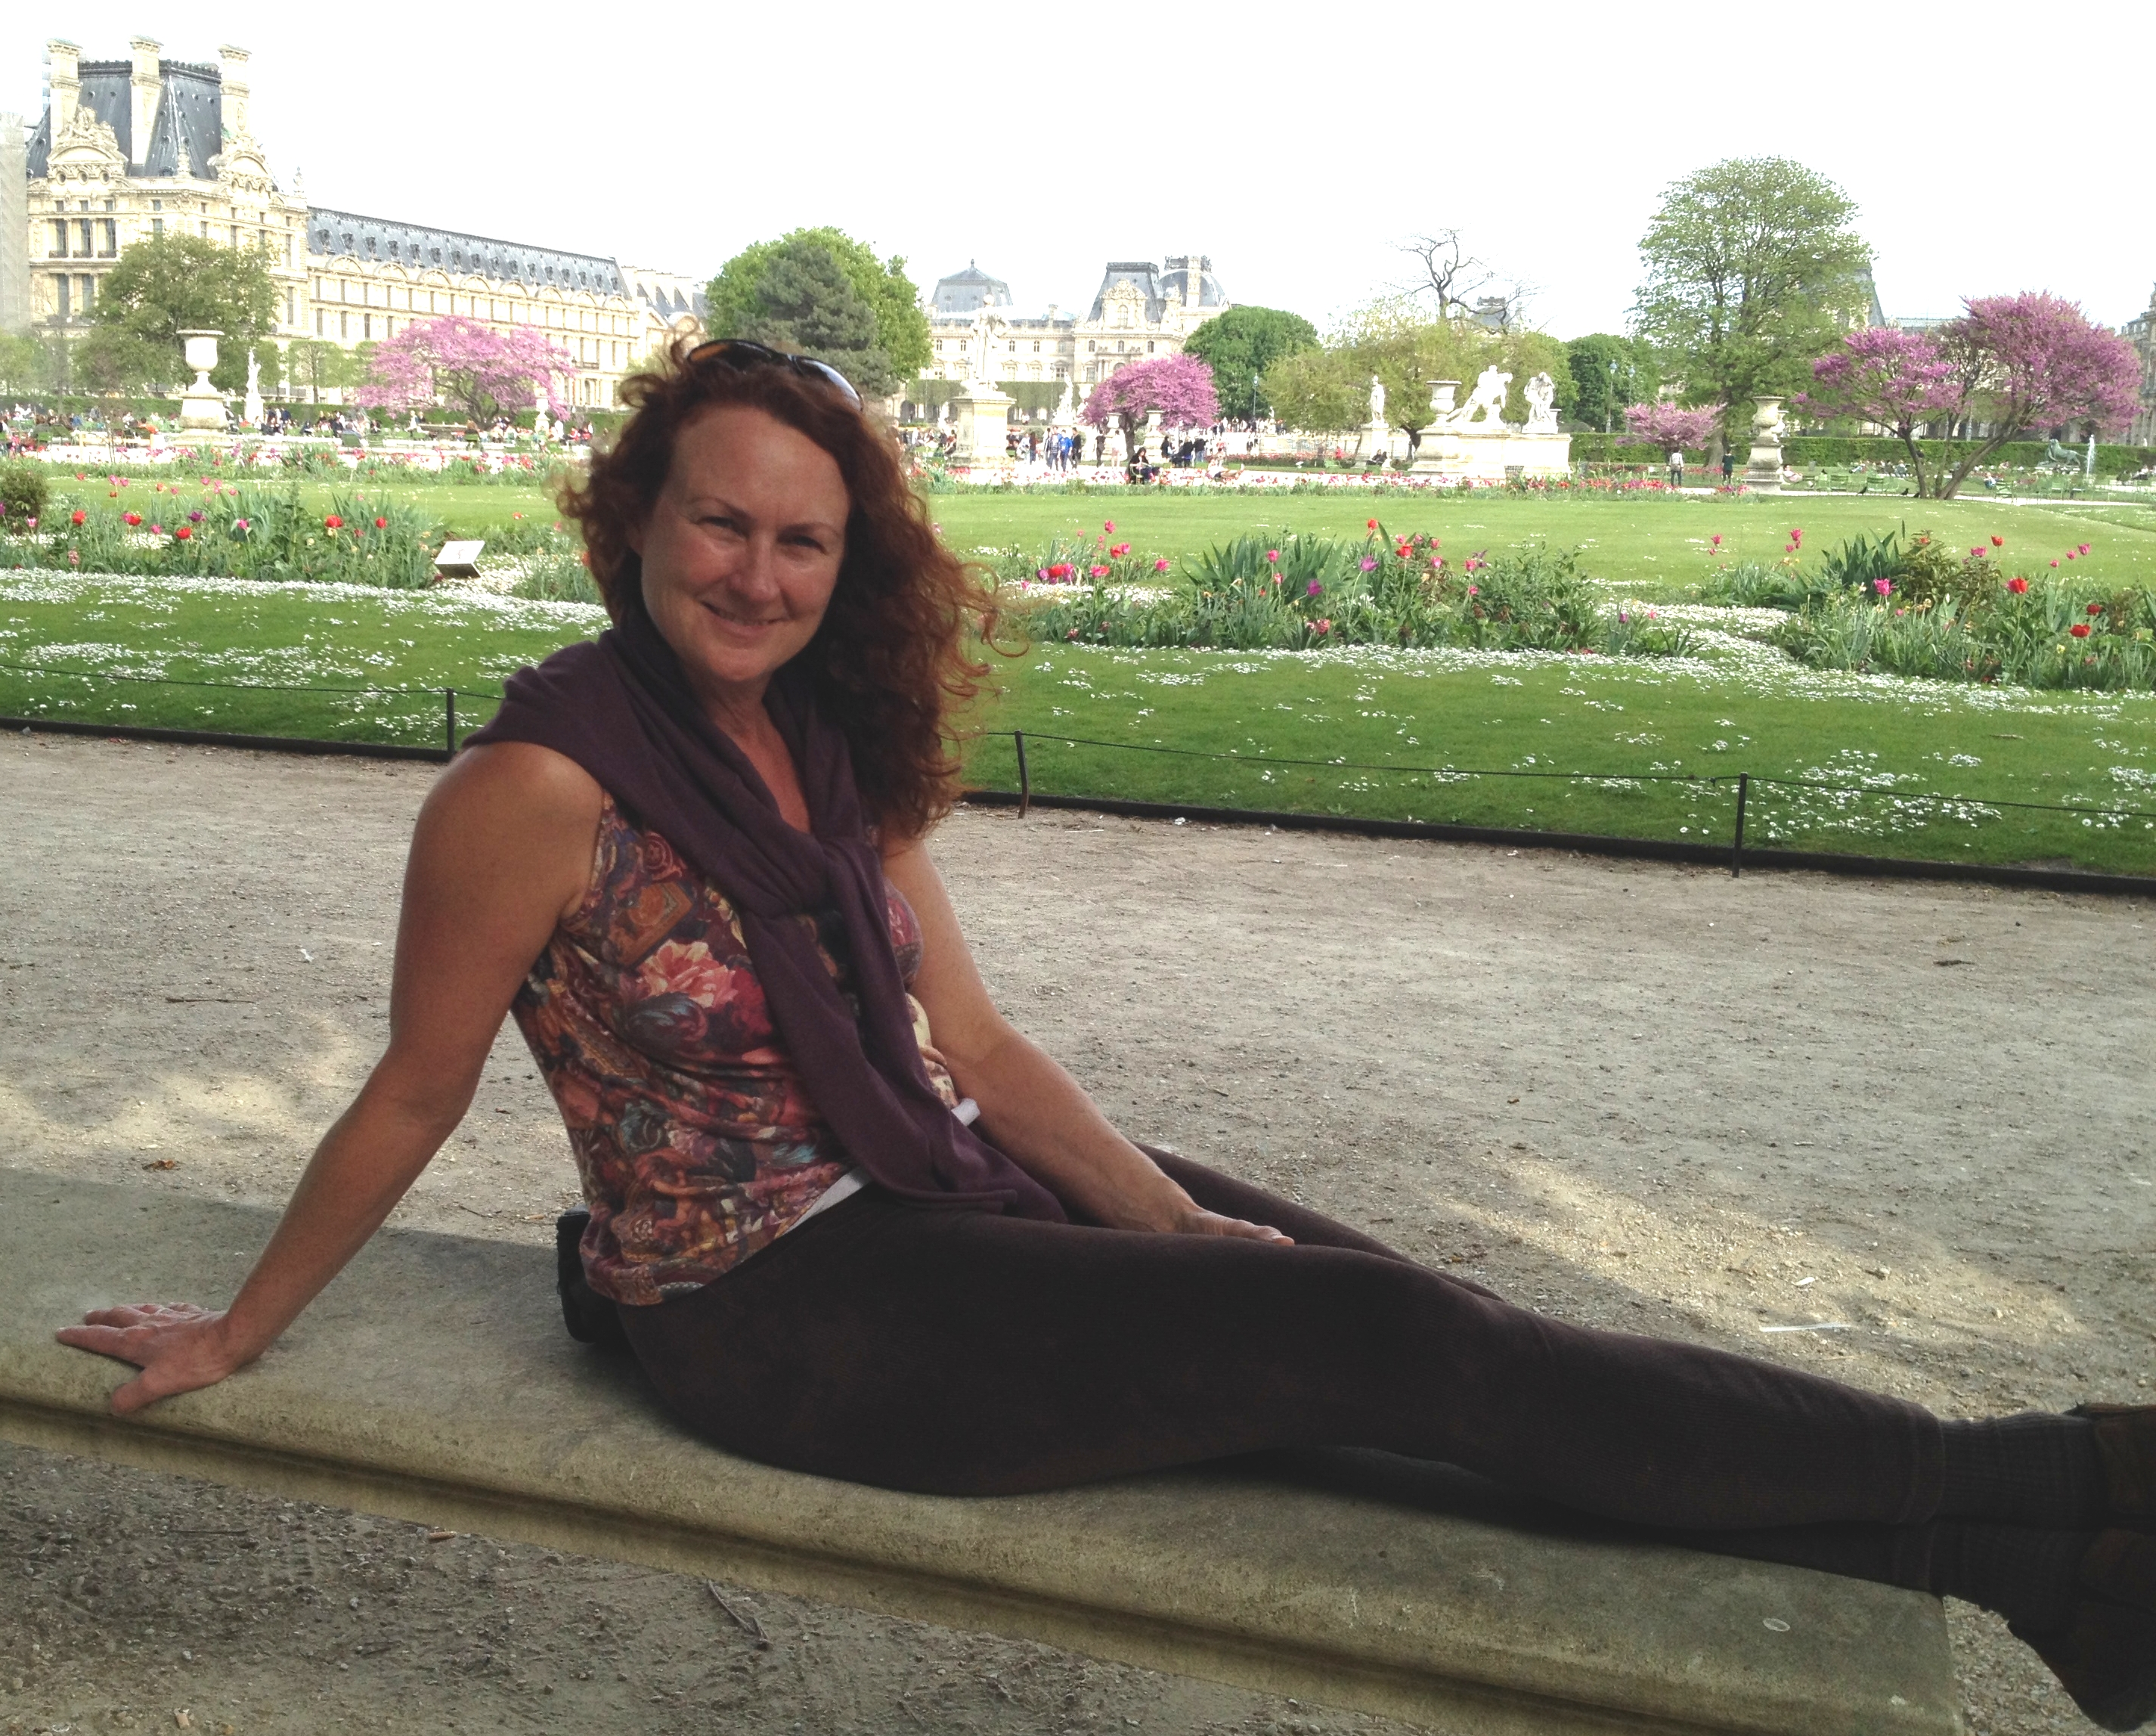 An American Mermaid in Paris - at the Tuilleries